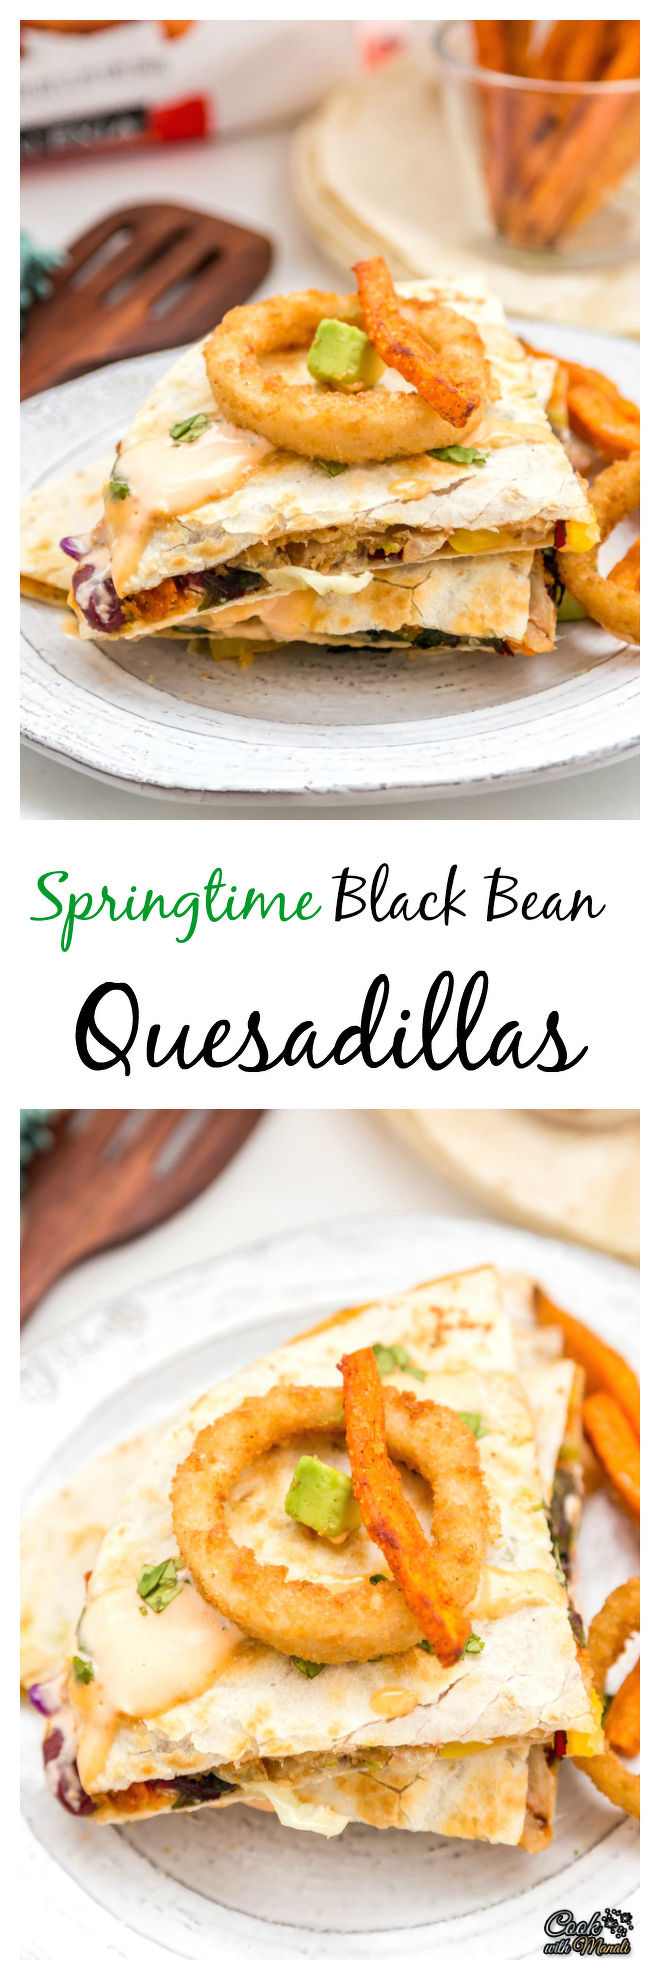 Black Bean Quesadillas Collage-nocwm